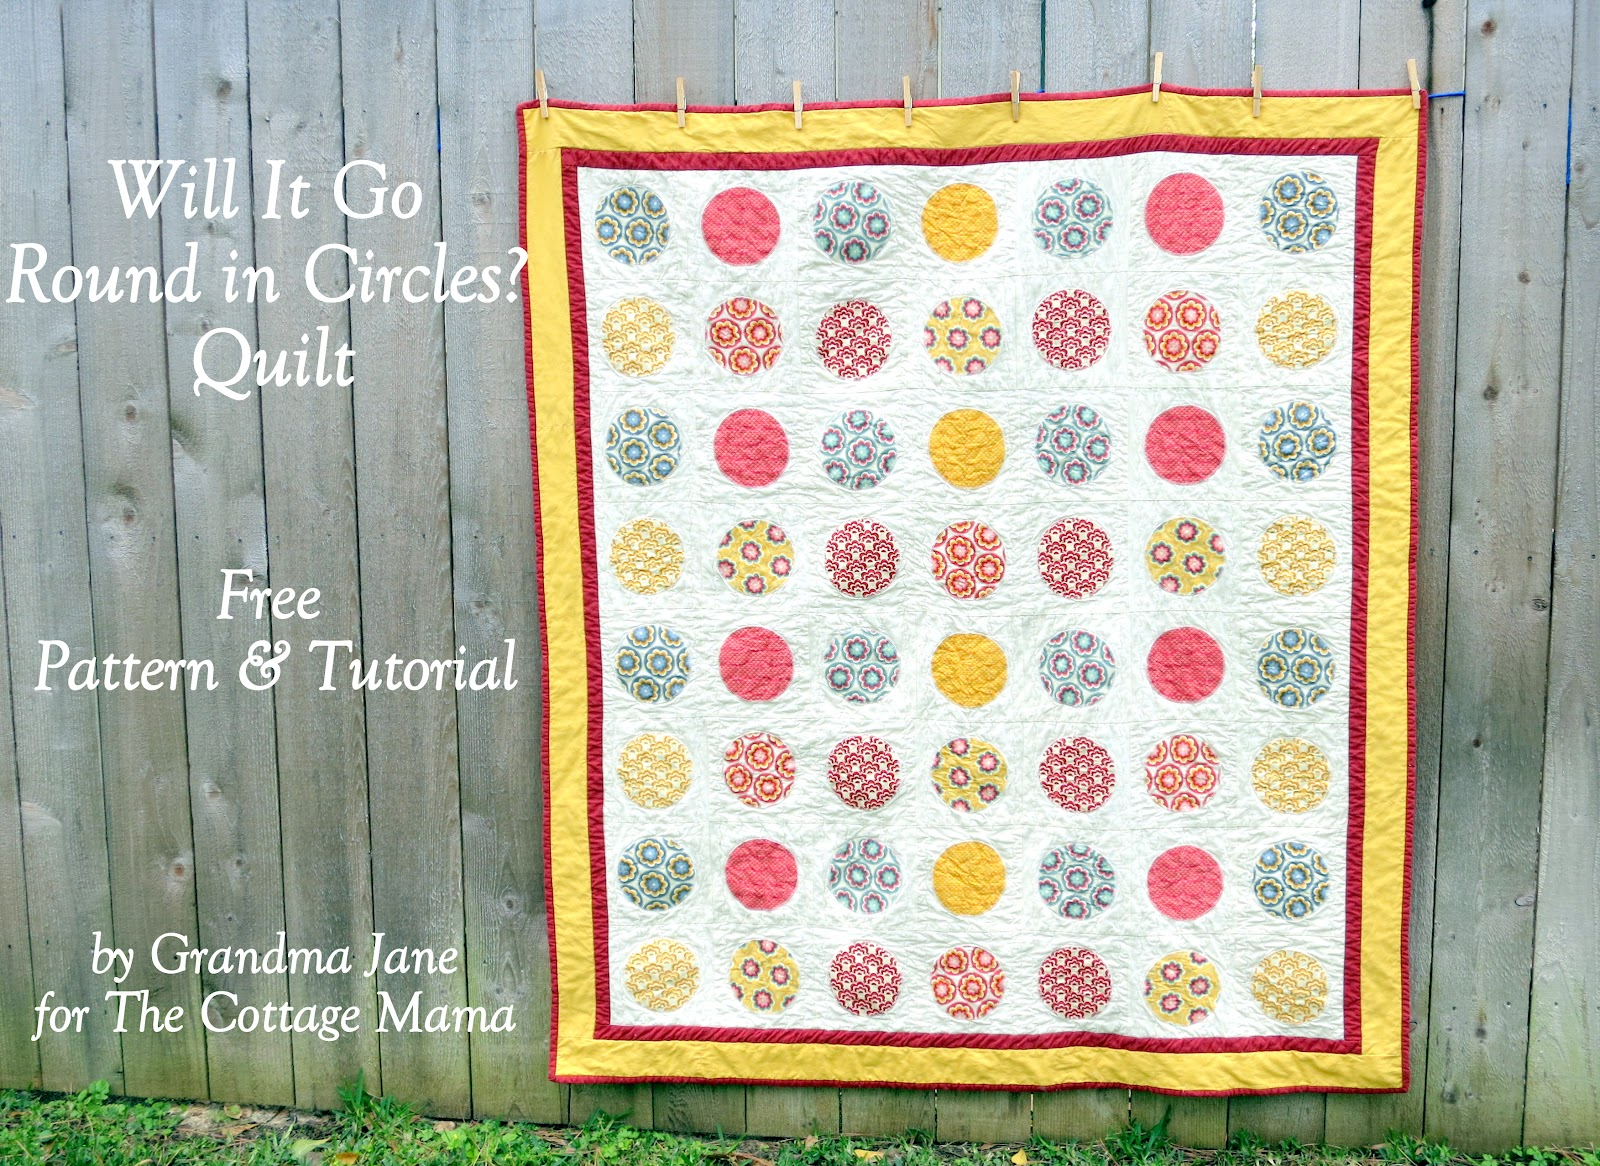 Will It Go Round In Circles? ~ Free Quilt Pattern and Tutorial